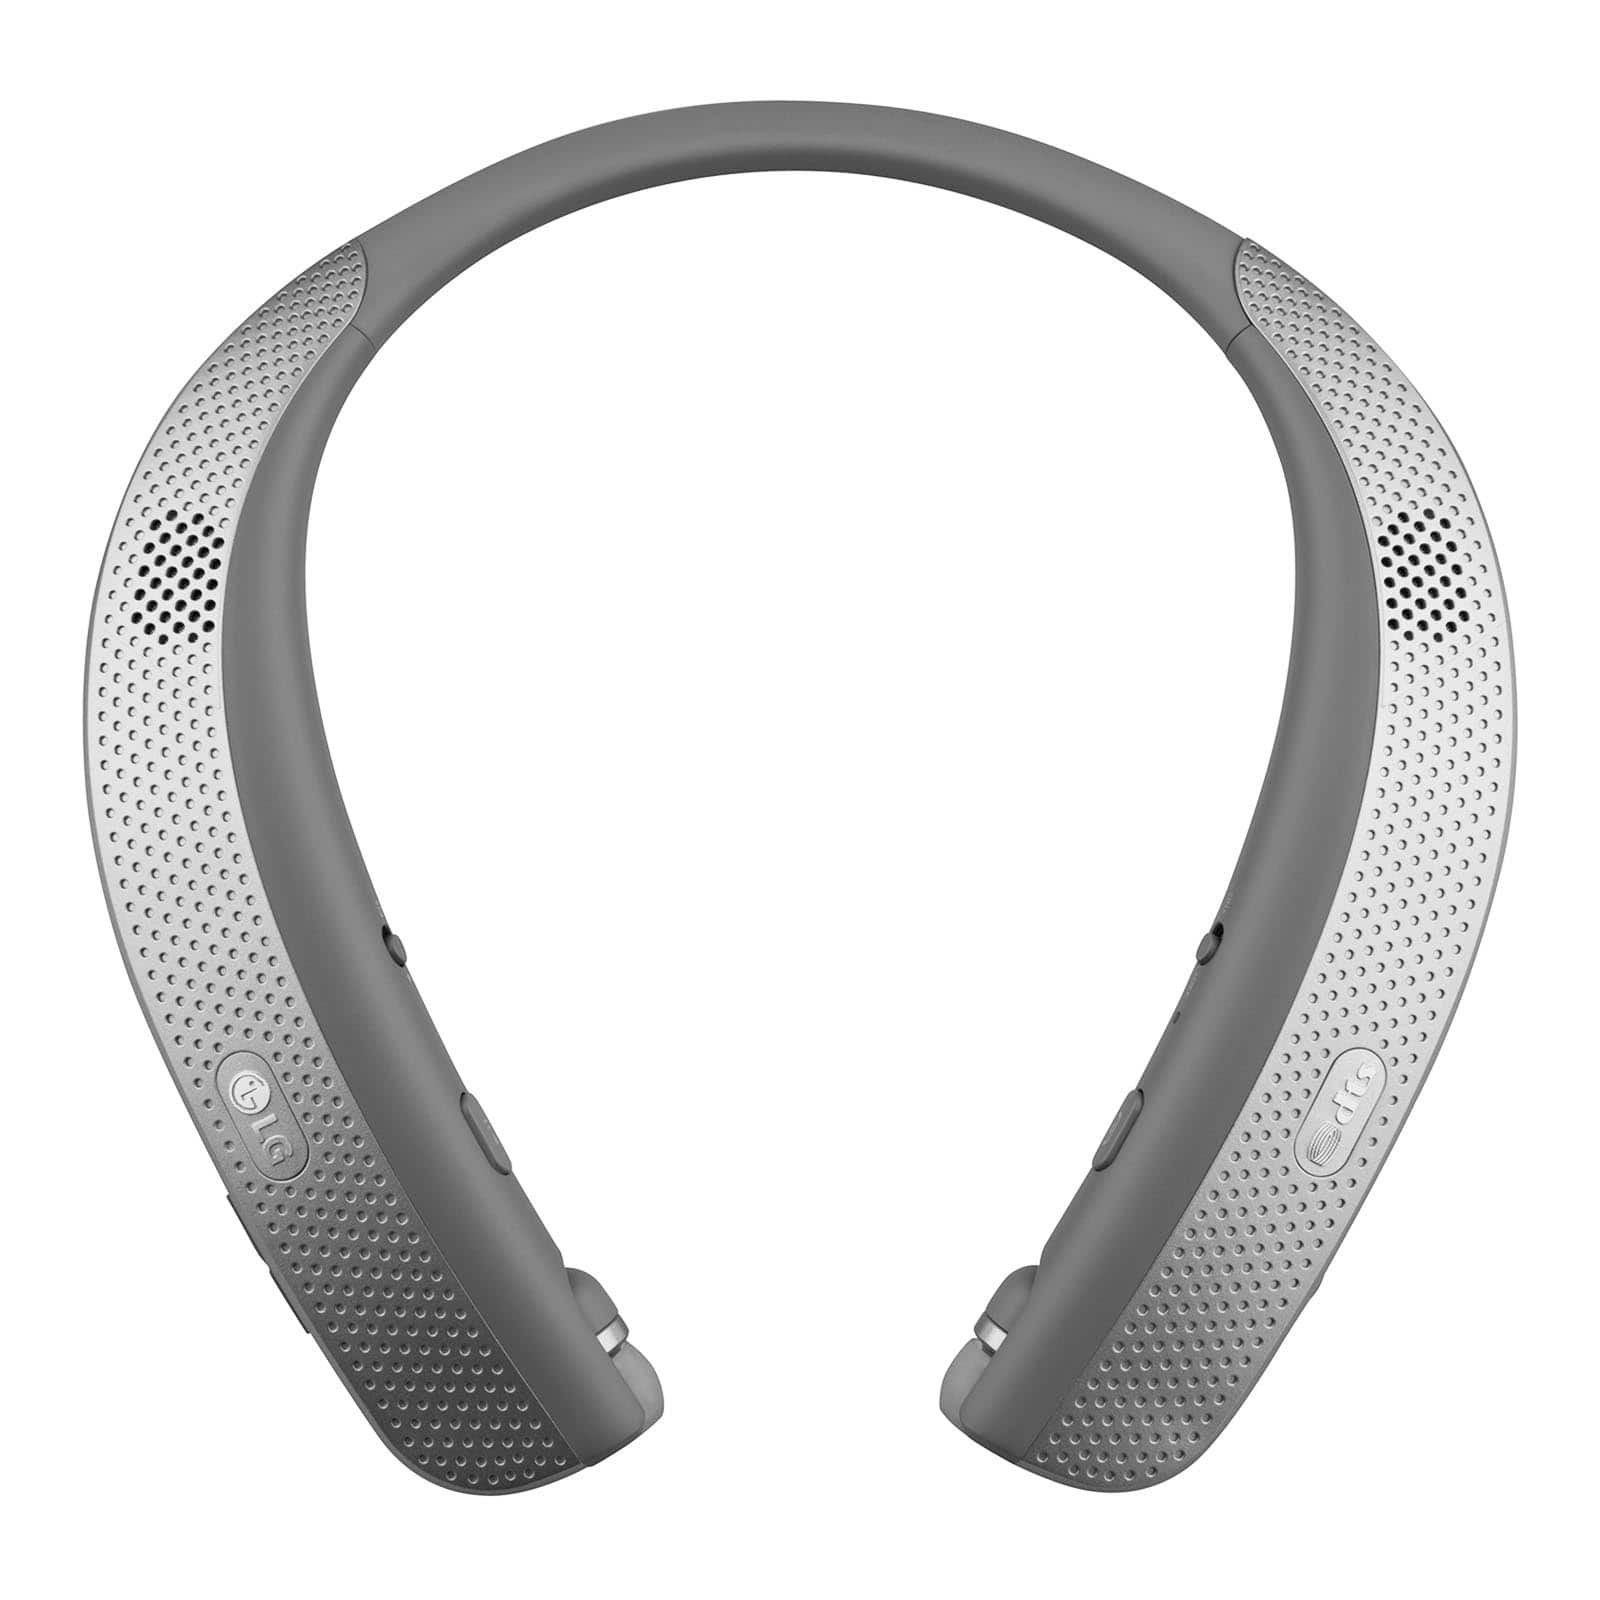 LG HBS-W120 TONE Studio Wearable Personal Speaker $100 + free shipping